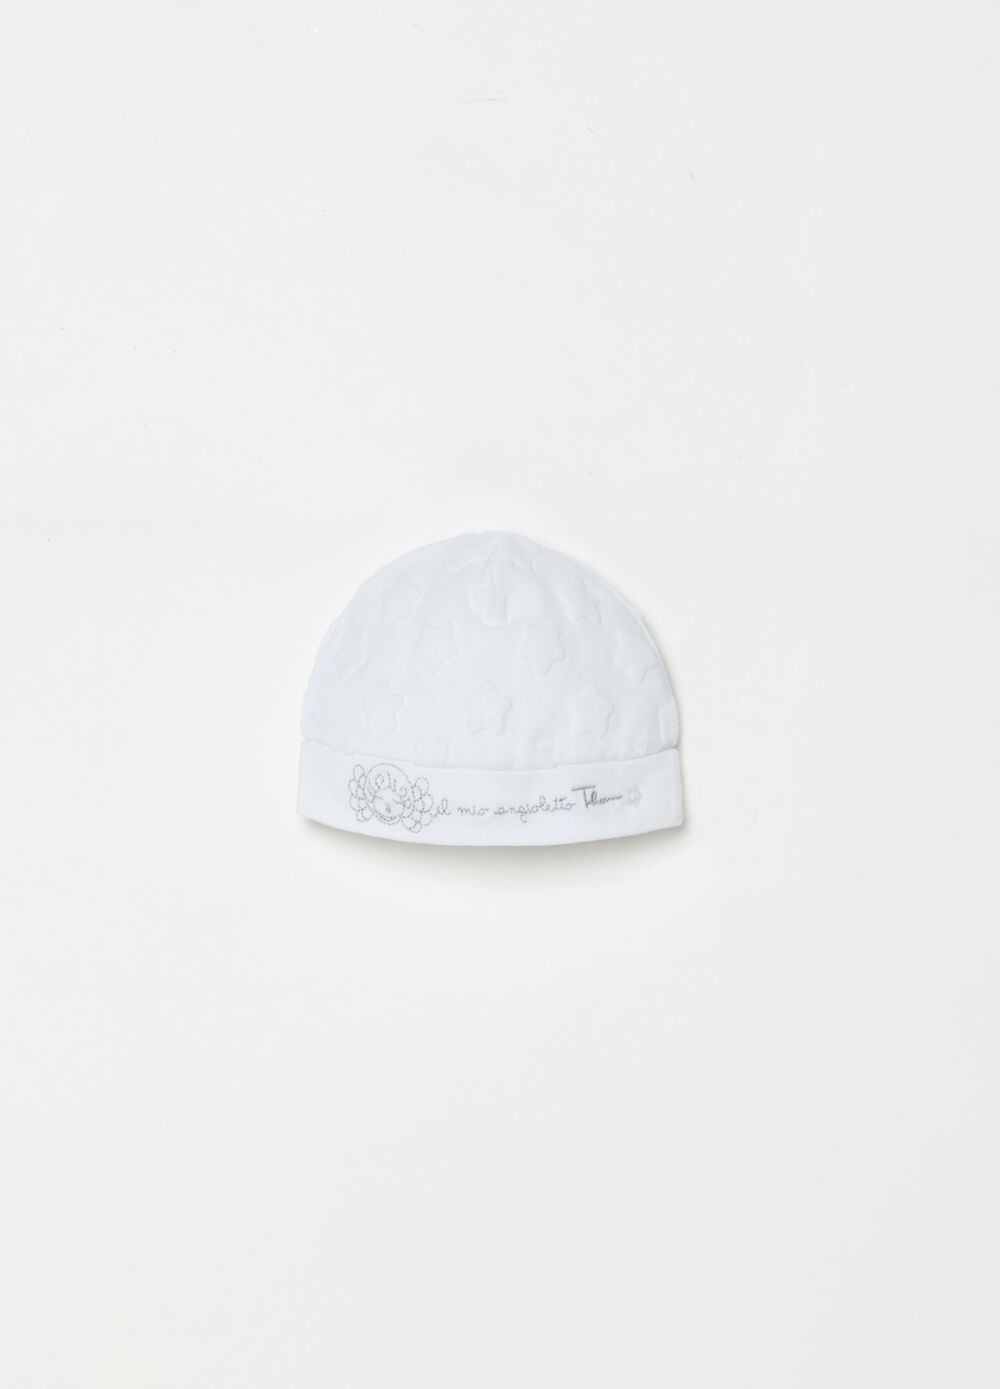 THUN unisex beanie cap with applications